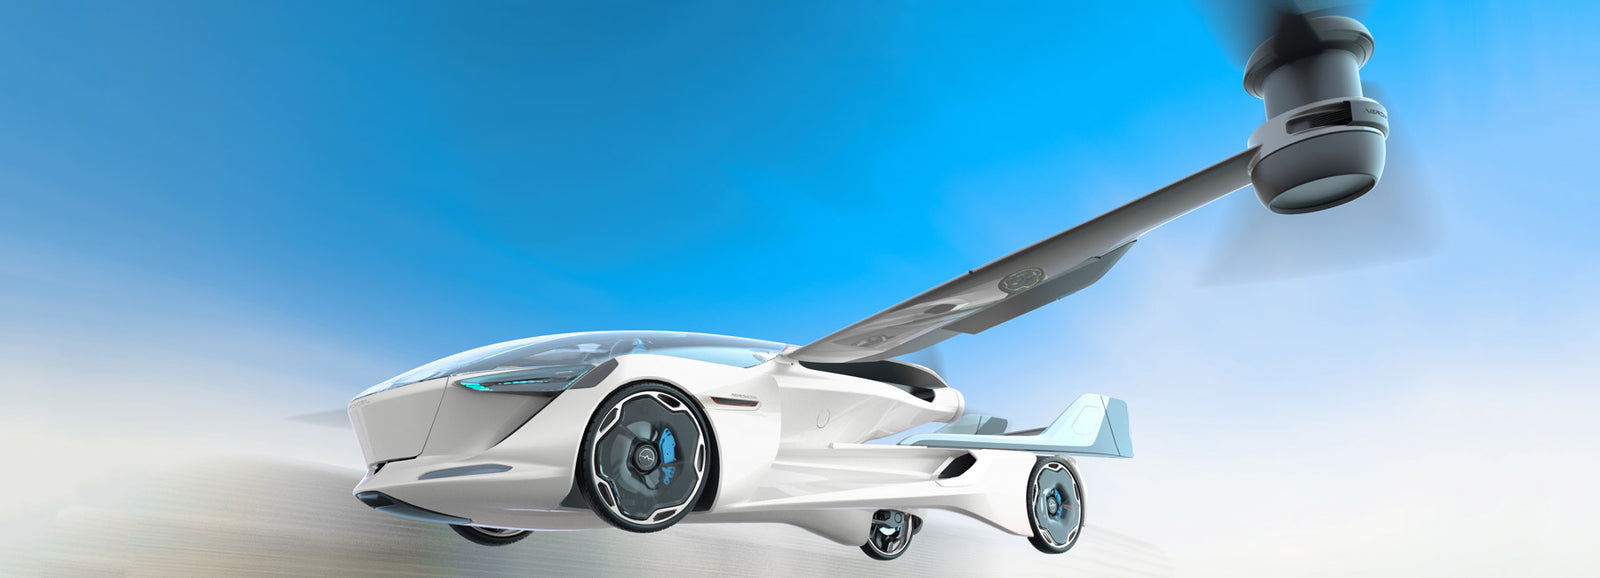 AeroMobil Teases 5.0 VTOL Flying Car